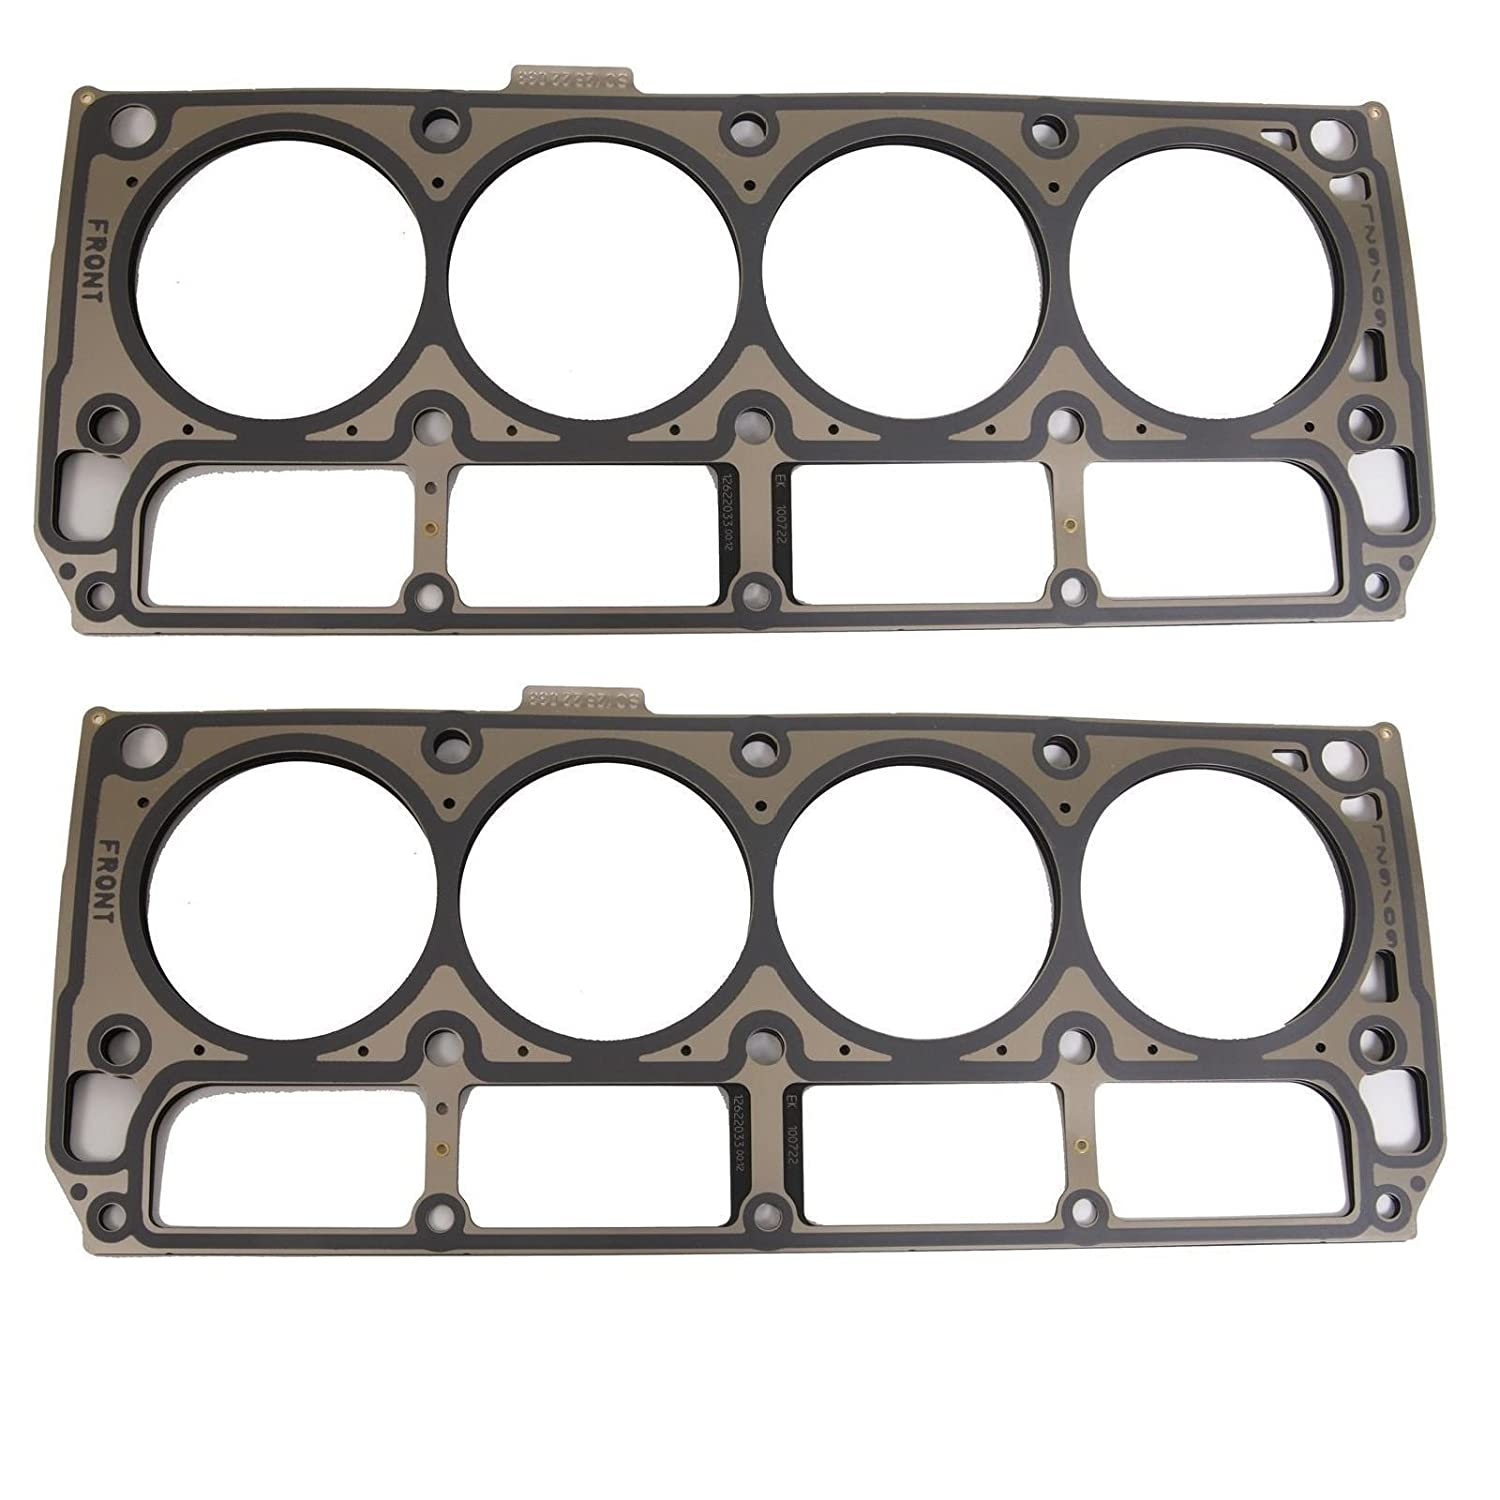 B077H61PNP Brian Tooley Racing LS9 Cylinder Head Gaskets MLS PAIR Turbo Multi Layer 4.100 Bore 71546oth5IL._SL1500_